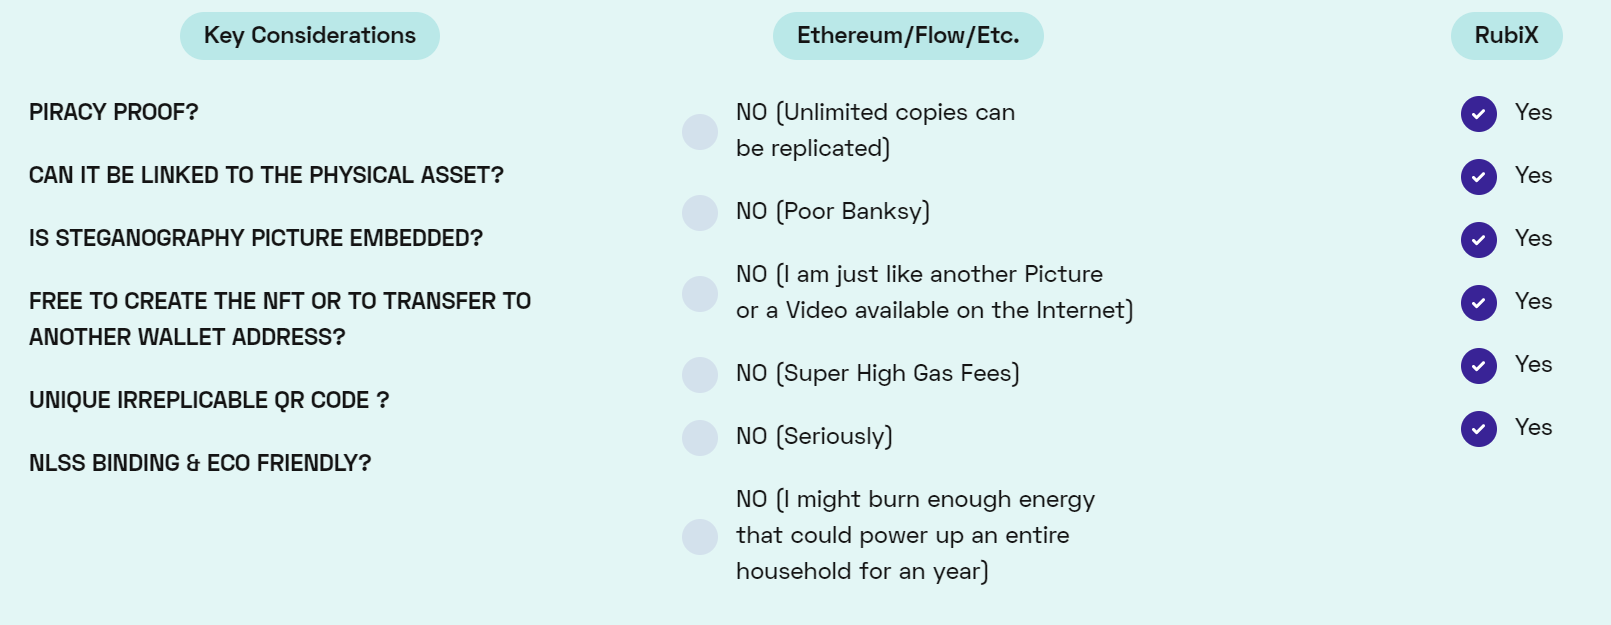 RubiX NFTs (non-fungible tokens) vs. that of other blockchains (Source: RubiX website)